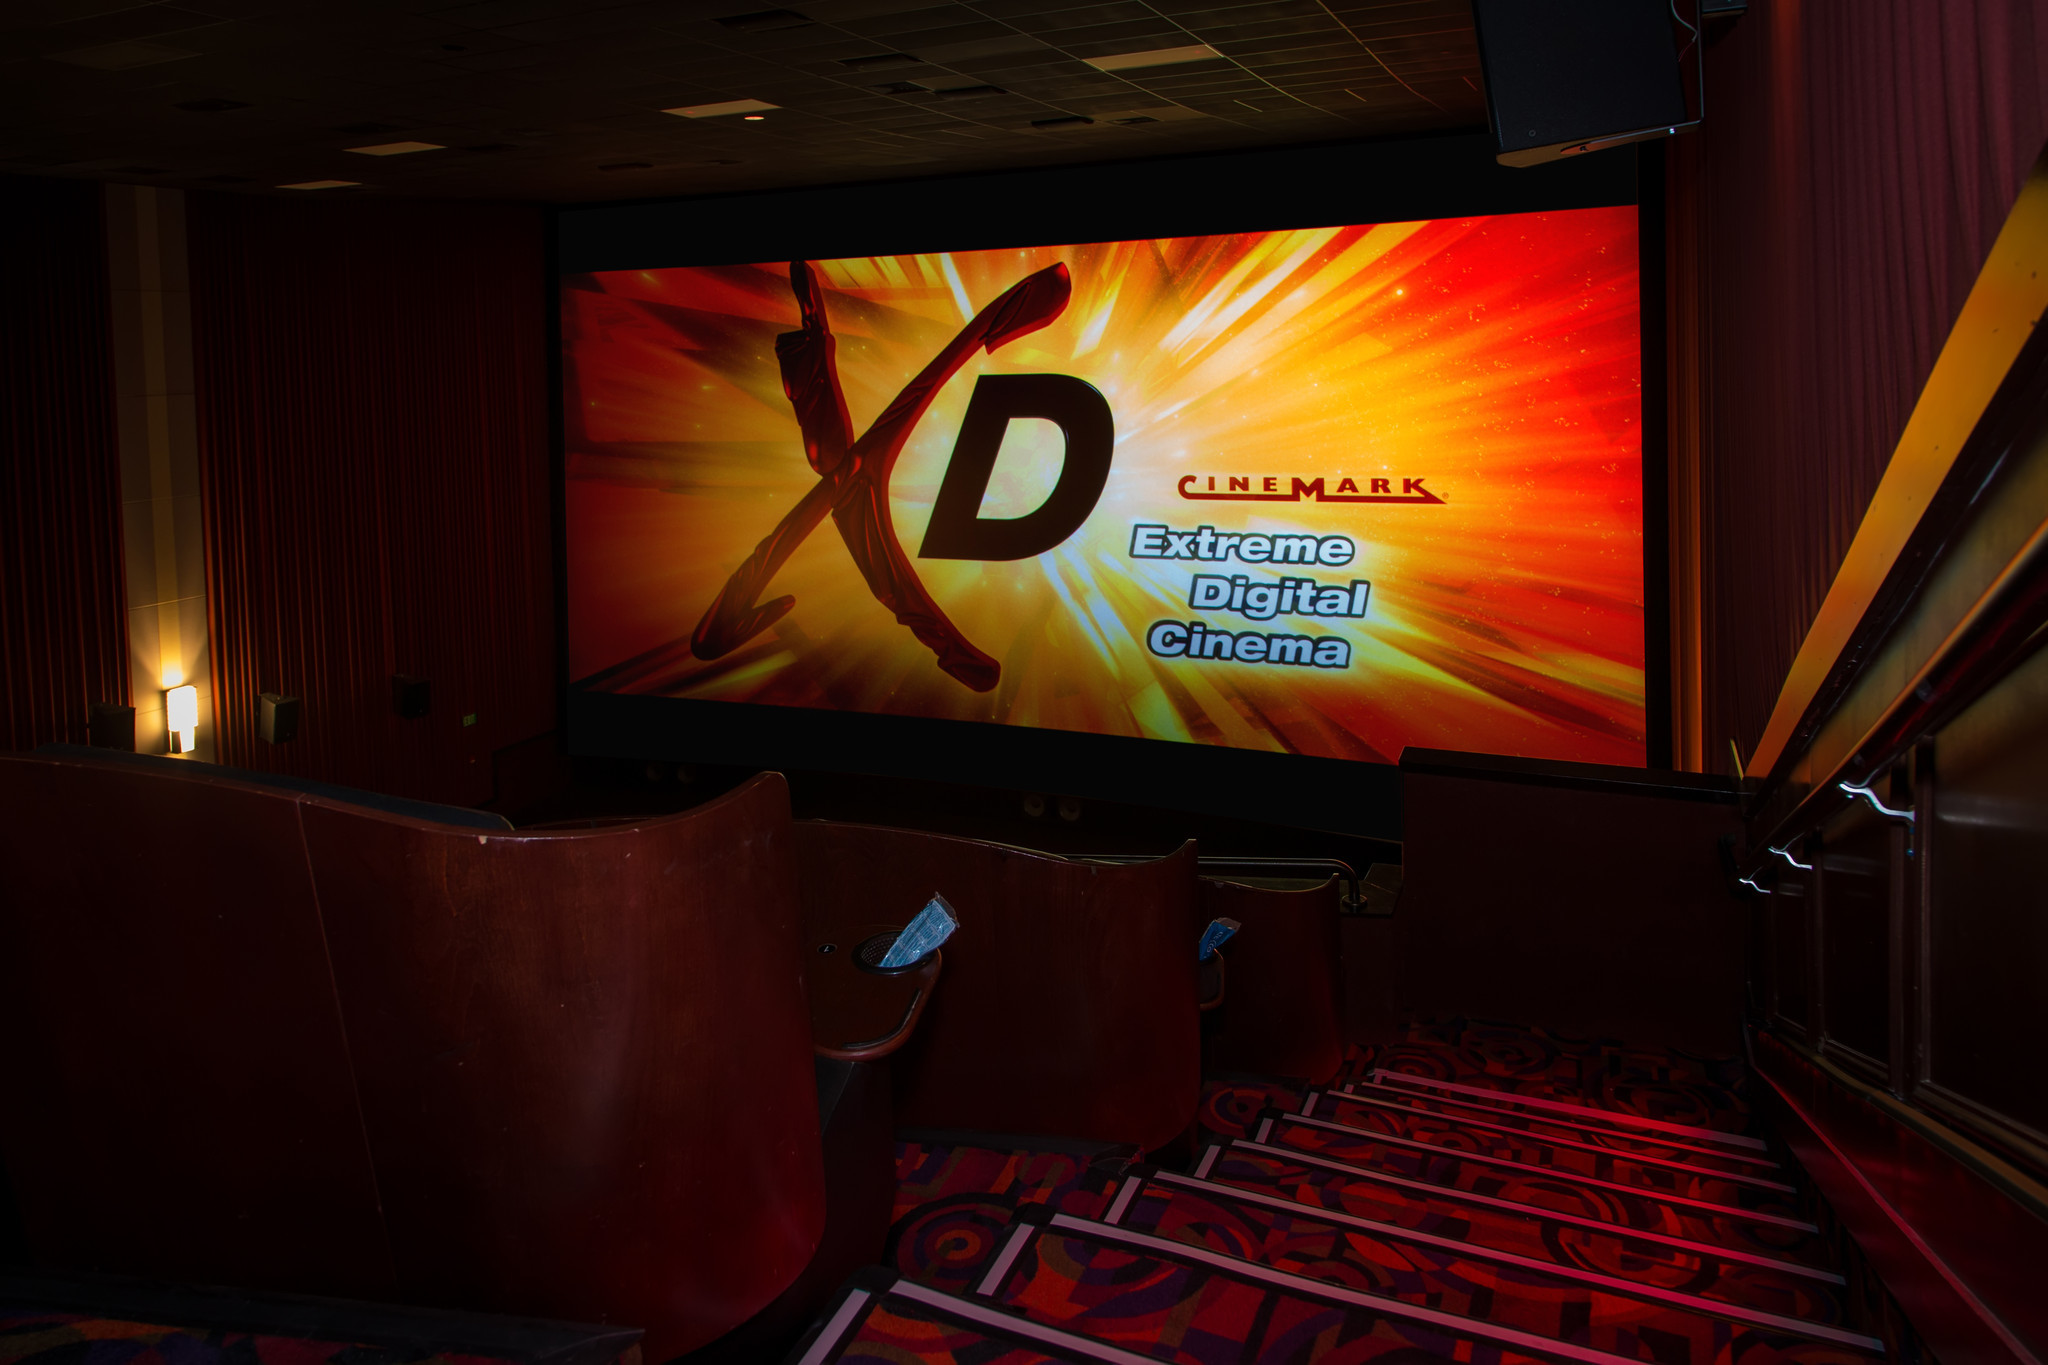 3D auditorium opens at Boca Raton's Cinemark Palace 20